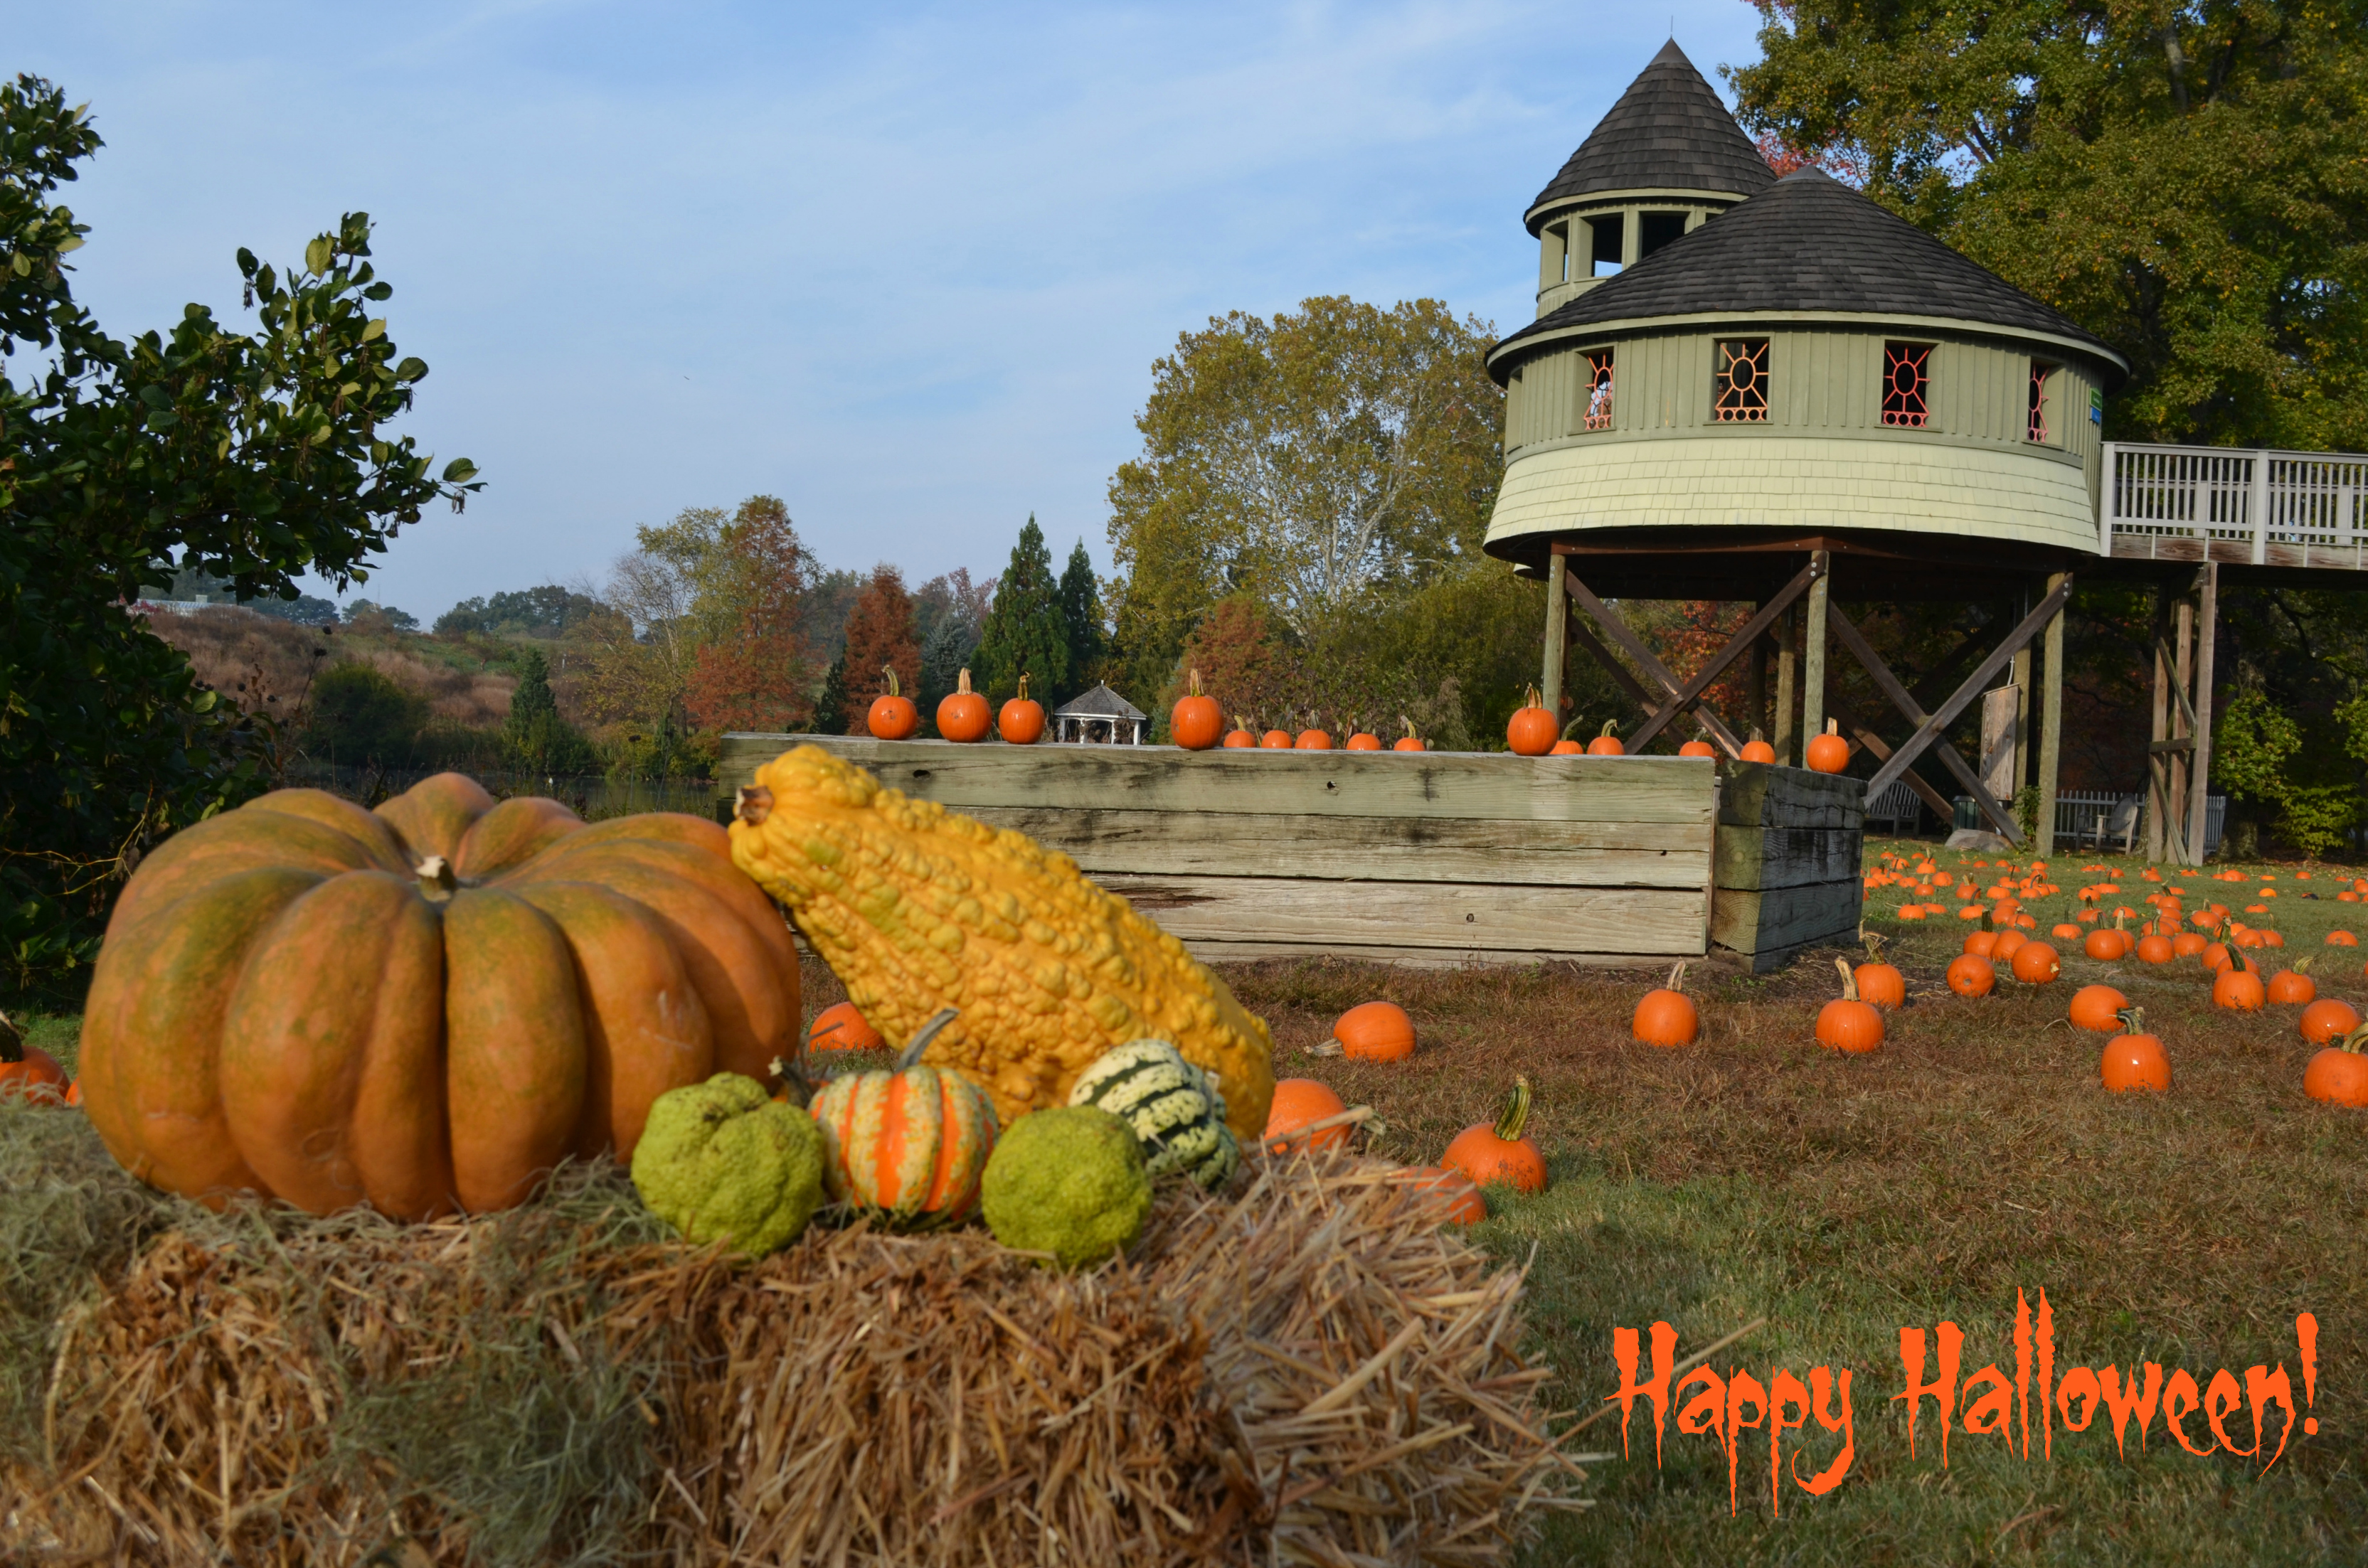 Happy Halloween! - Lewis Ginter Botanical Garden